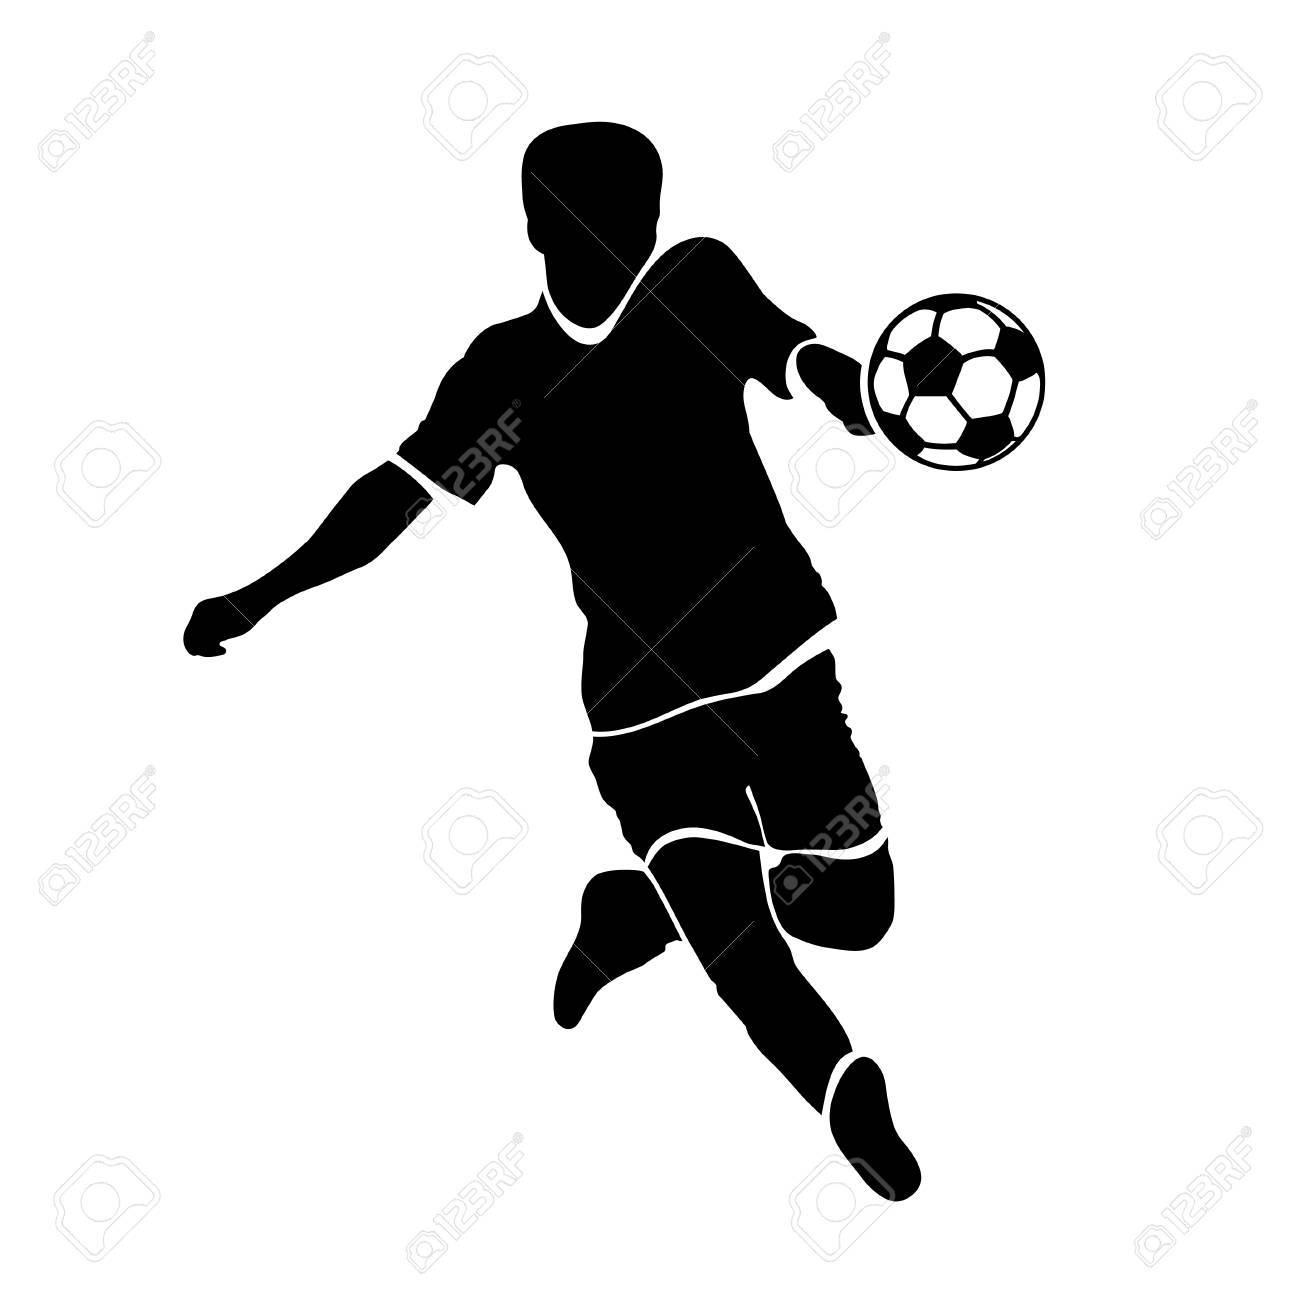 1300x1300 Footballer Silhouette Black Football Player Outline With A Ball